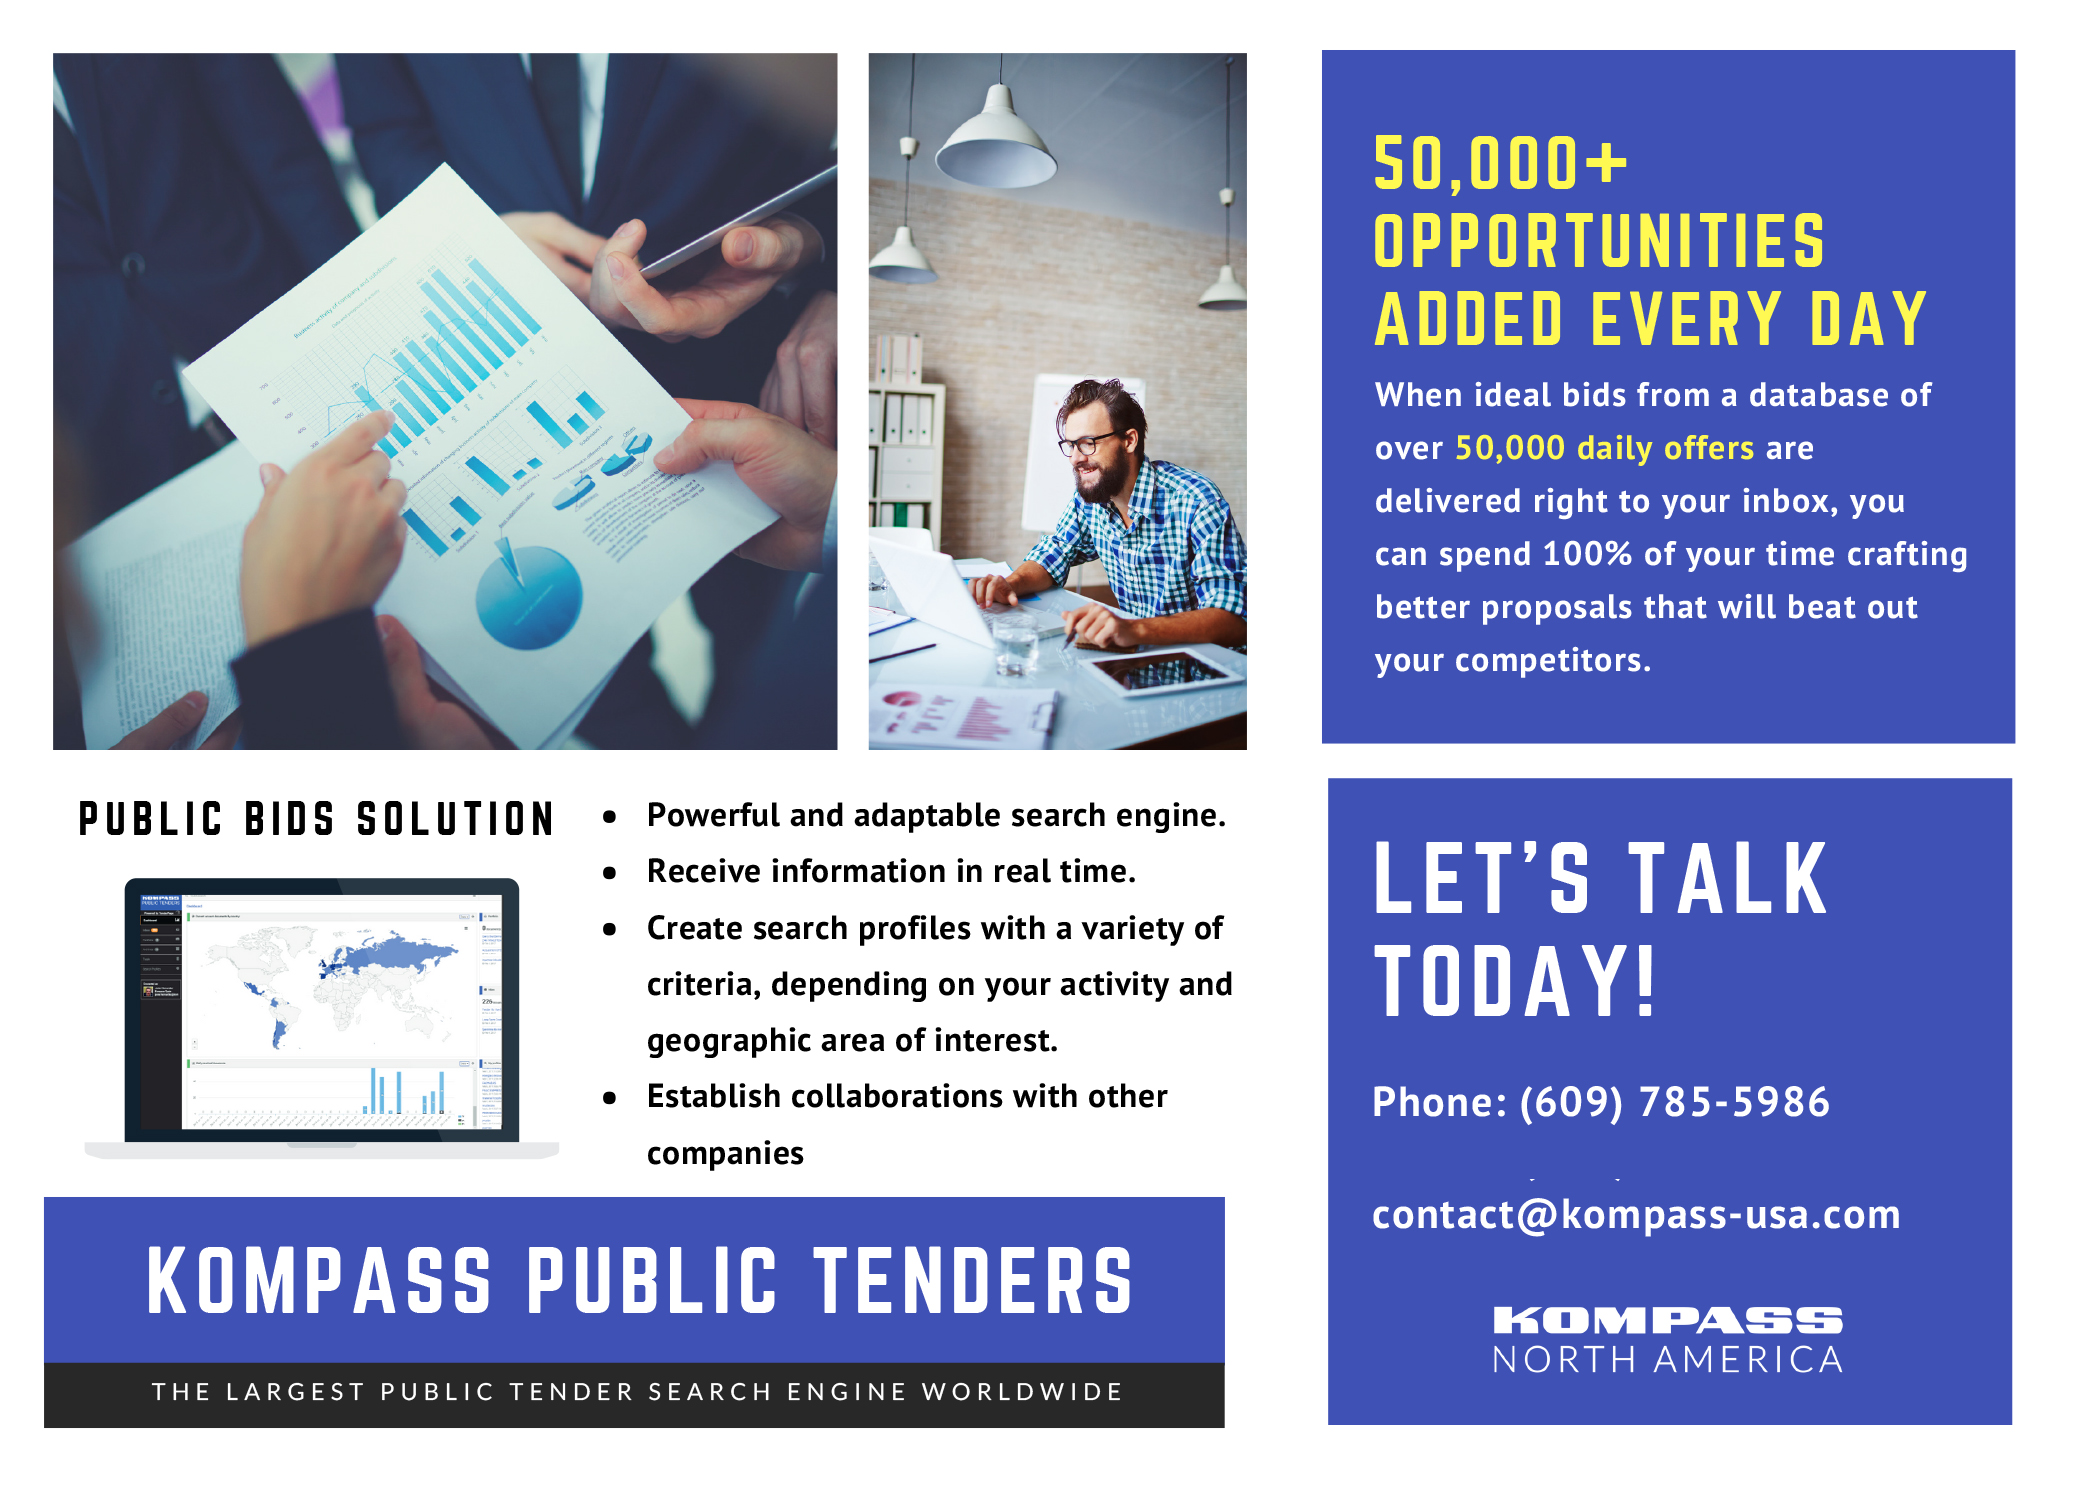 Kompass Public Tenders: The Largest Public Tenders Search Engine Worldwide